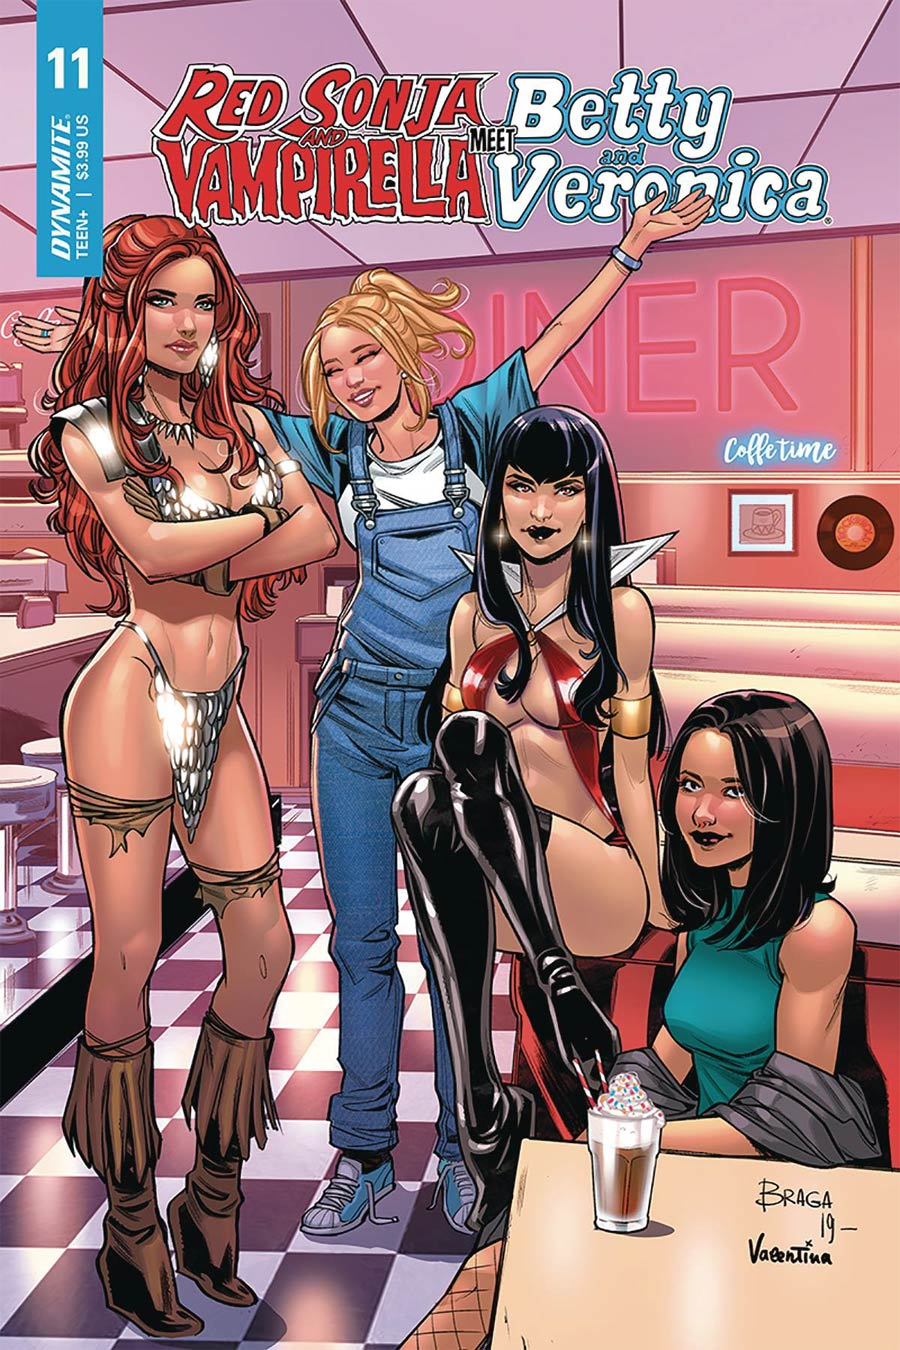 Red Sonja And Vampirella Meet Betty And Veronica #11 Cover C Variant Laura Braga Cover